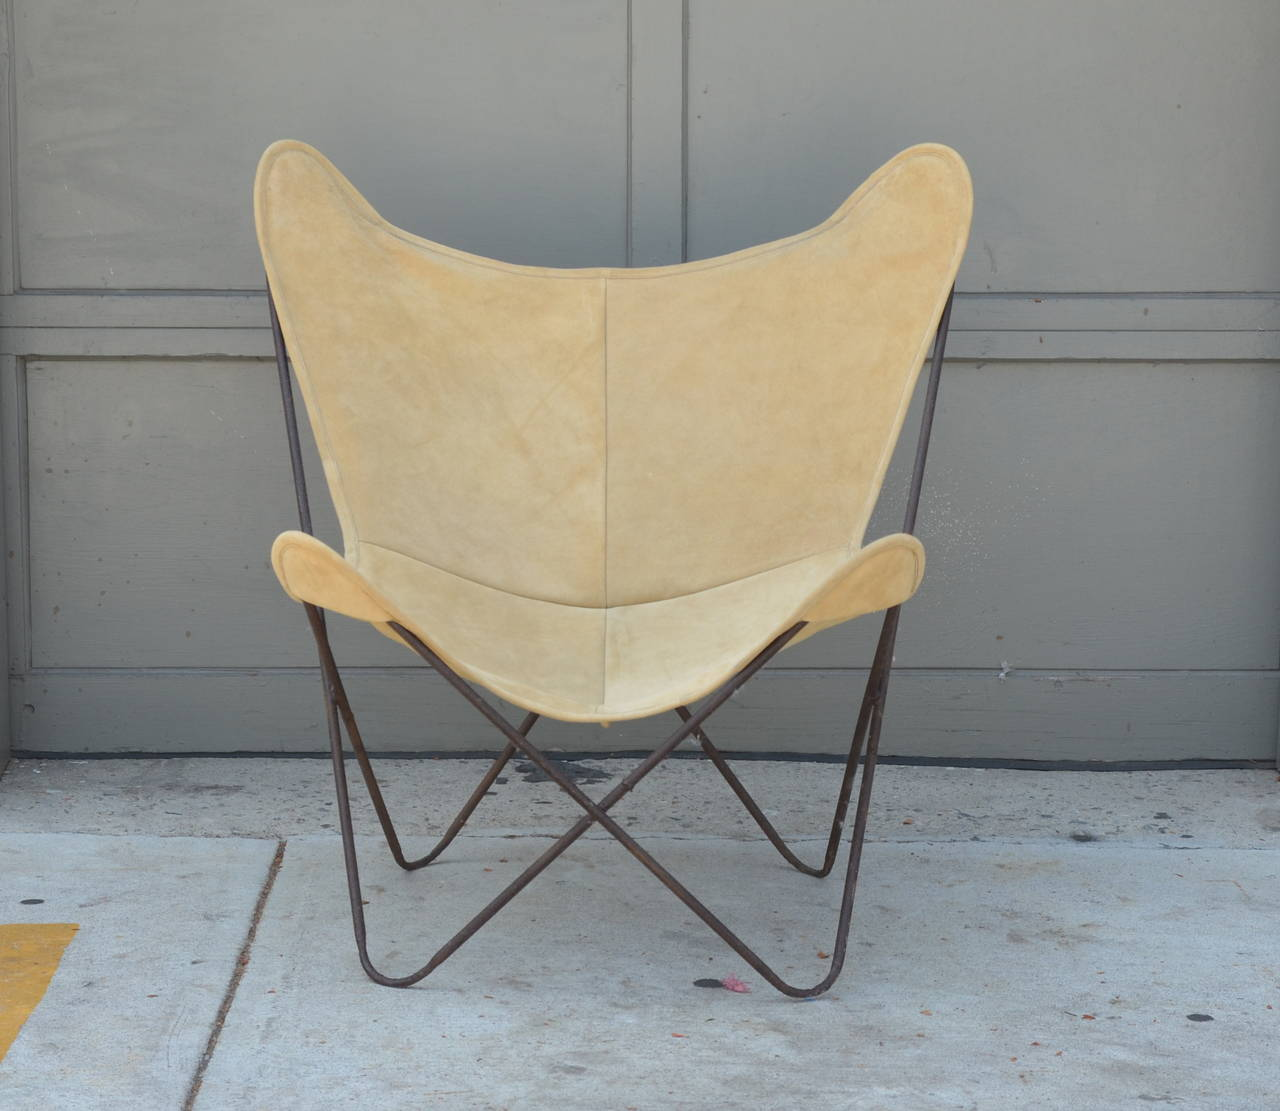 Butterfly chair original - Pair Of Original Vintage Hardoy Butterfly Chairs In Suede 2